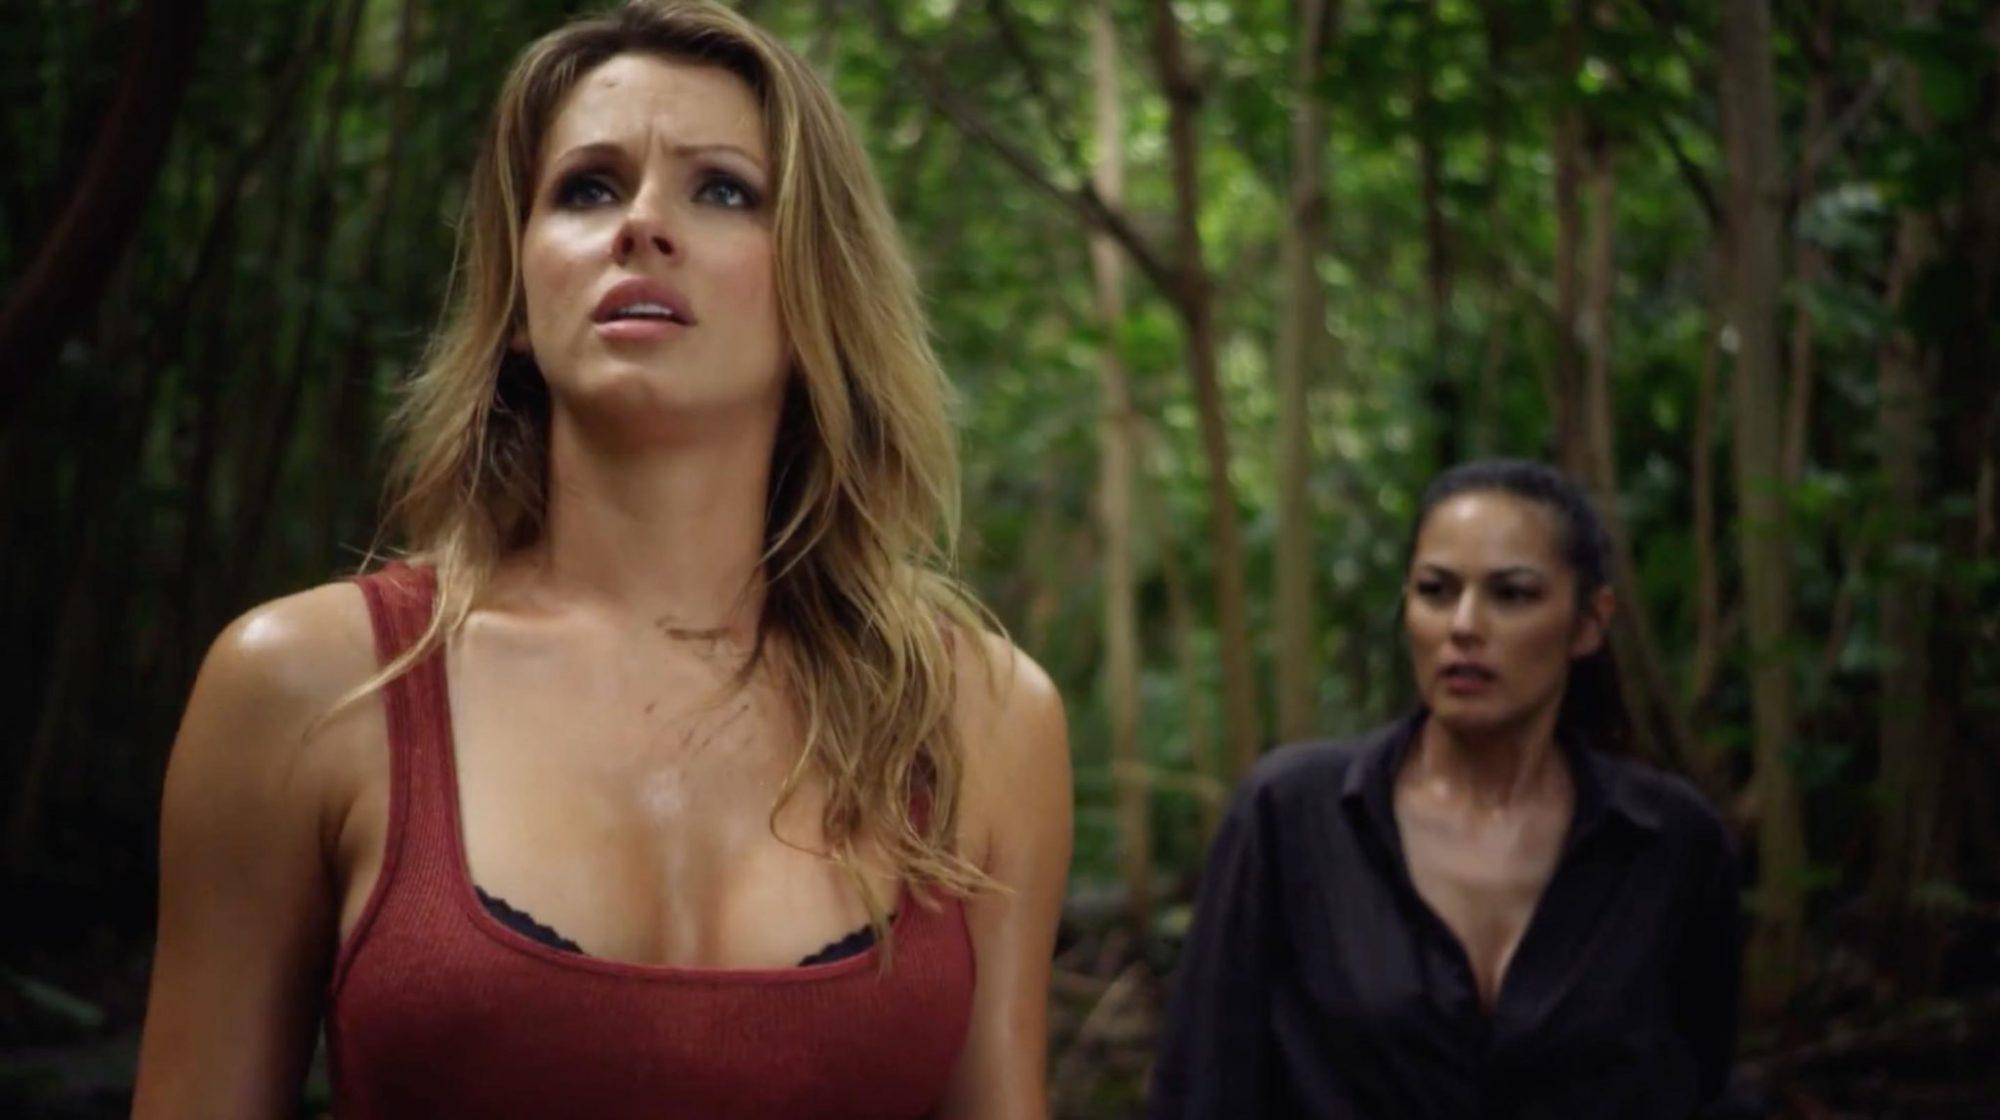 Shandi Finnessey and Terri Ivens in Piranhaconda (2012)